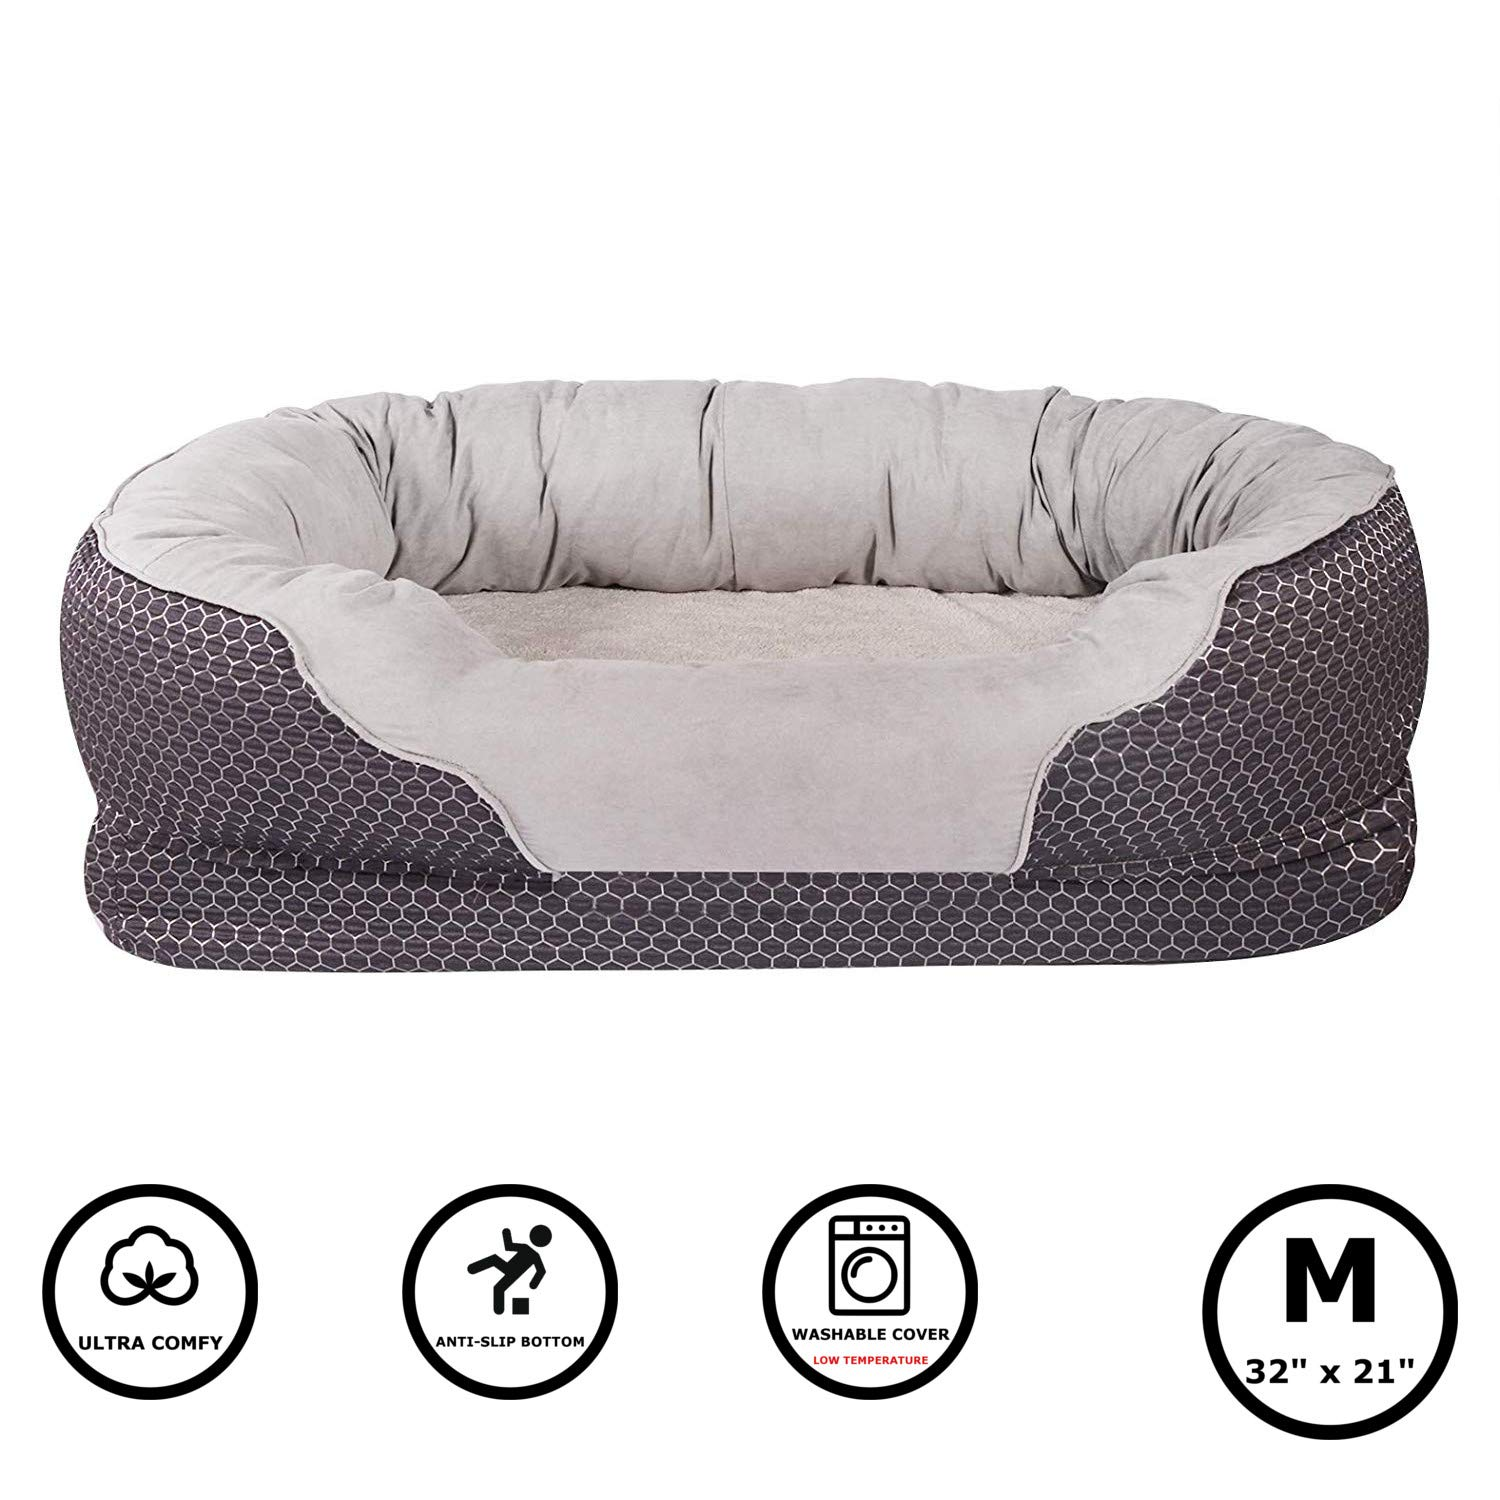 Pet Deluxe Dog and Puppy Bed, Grooved Orthopedic Foam Beds with Removable Washable Cover, Ultra Comfort, Padded Rim Cushion, Nonslip Bottom, for Dogs / Puppies - Dark Blue 32''x 21''